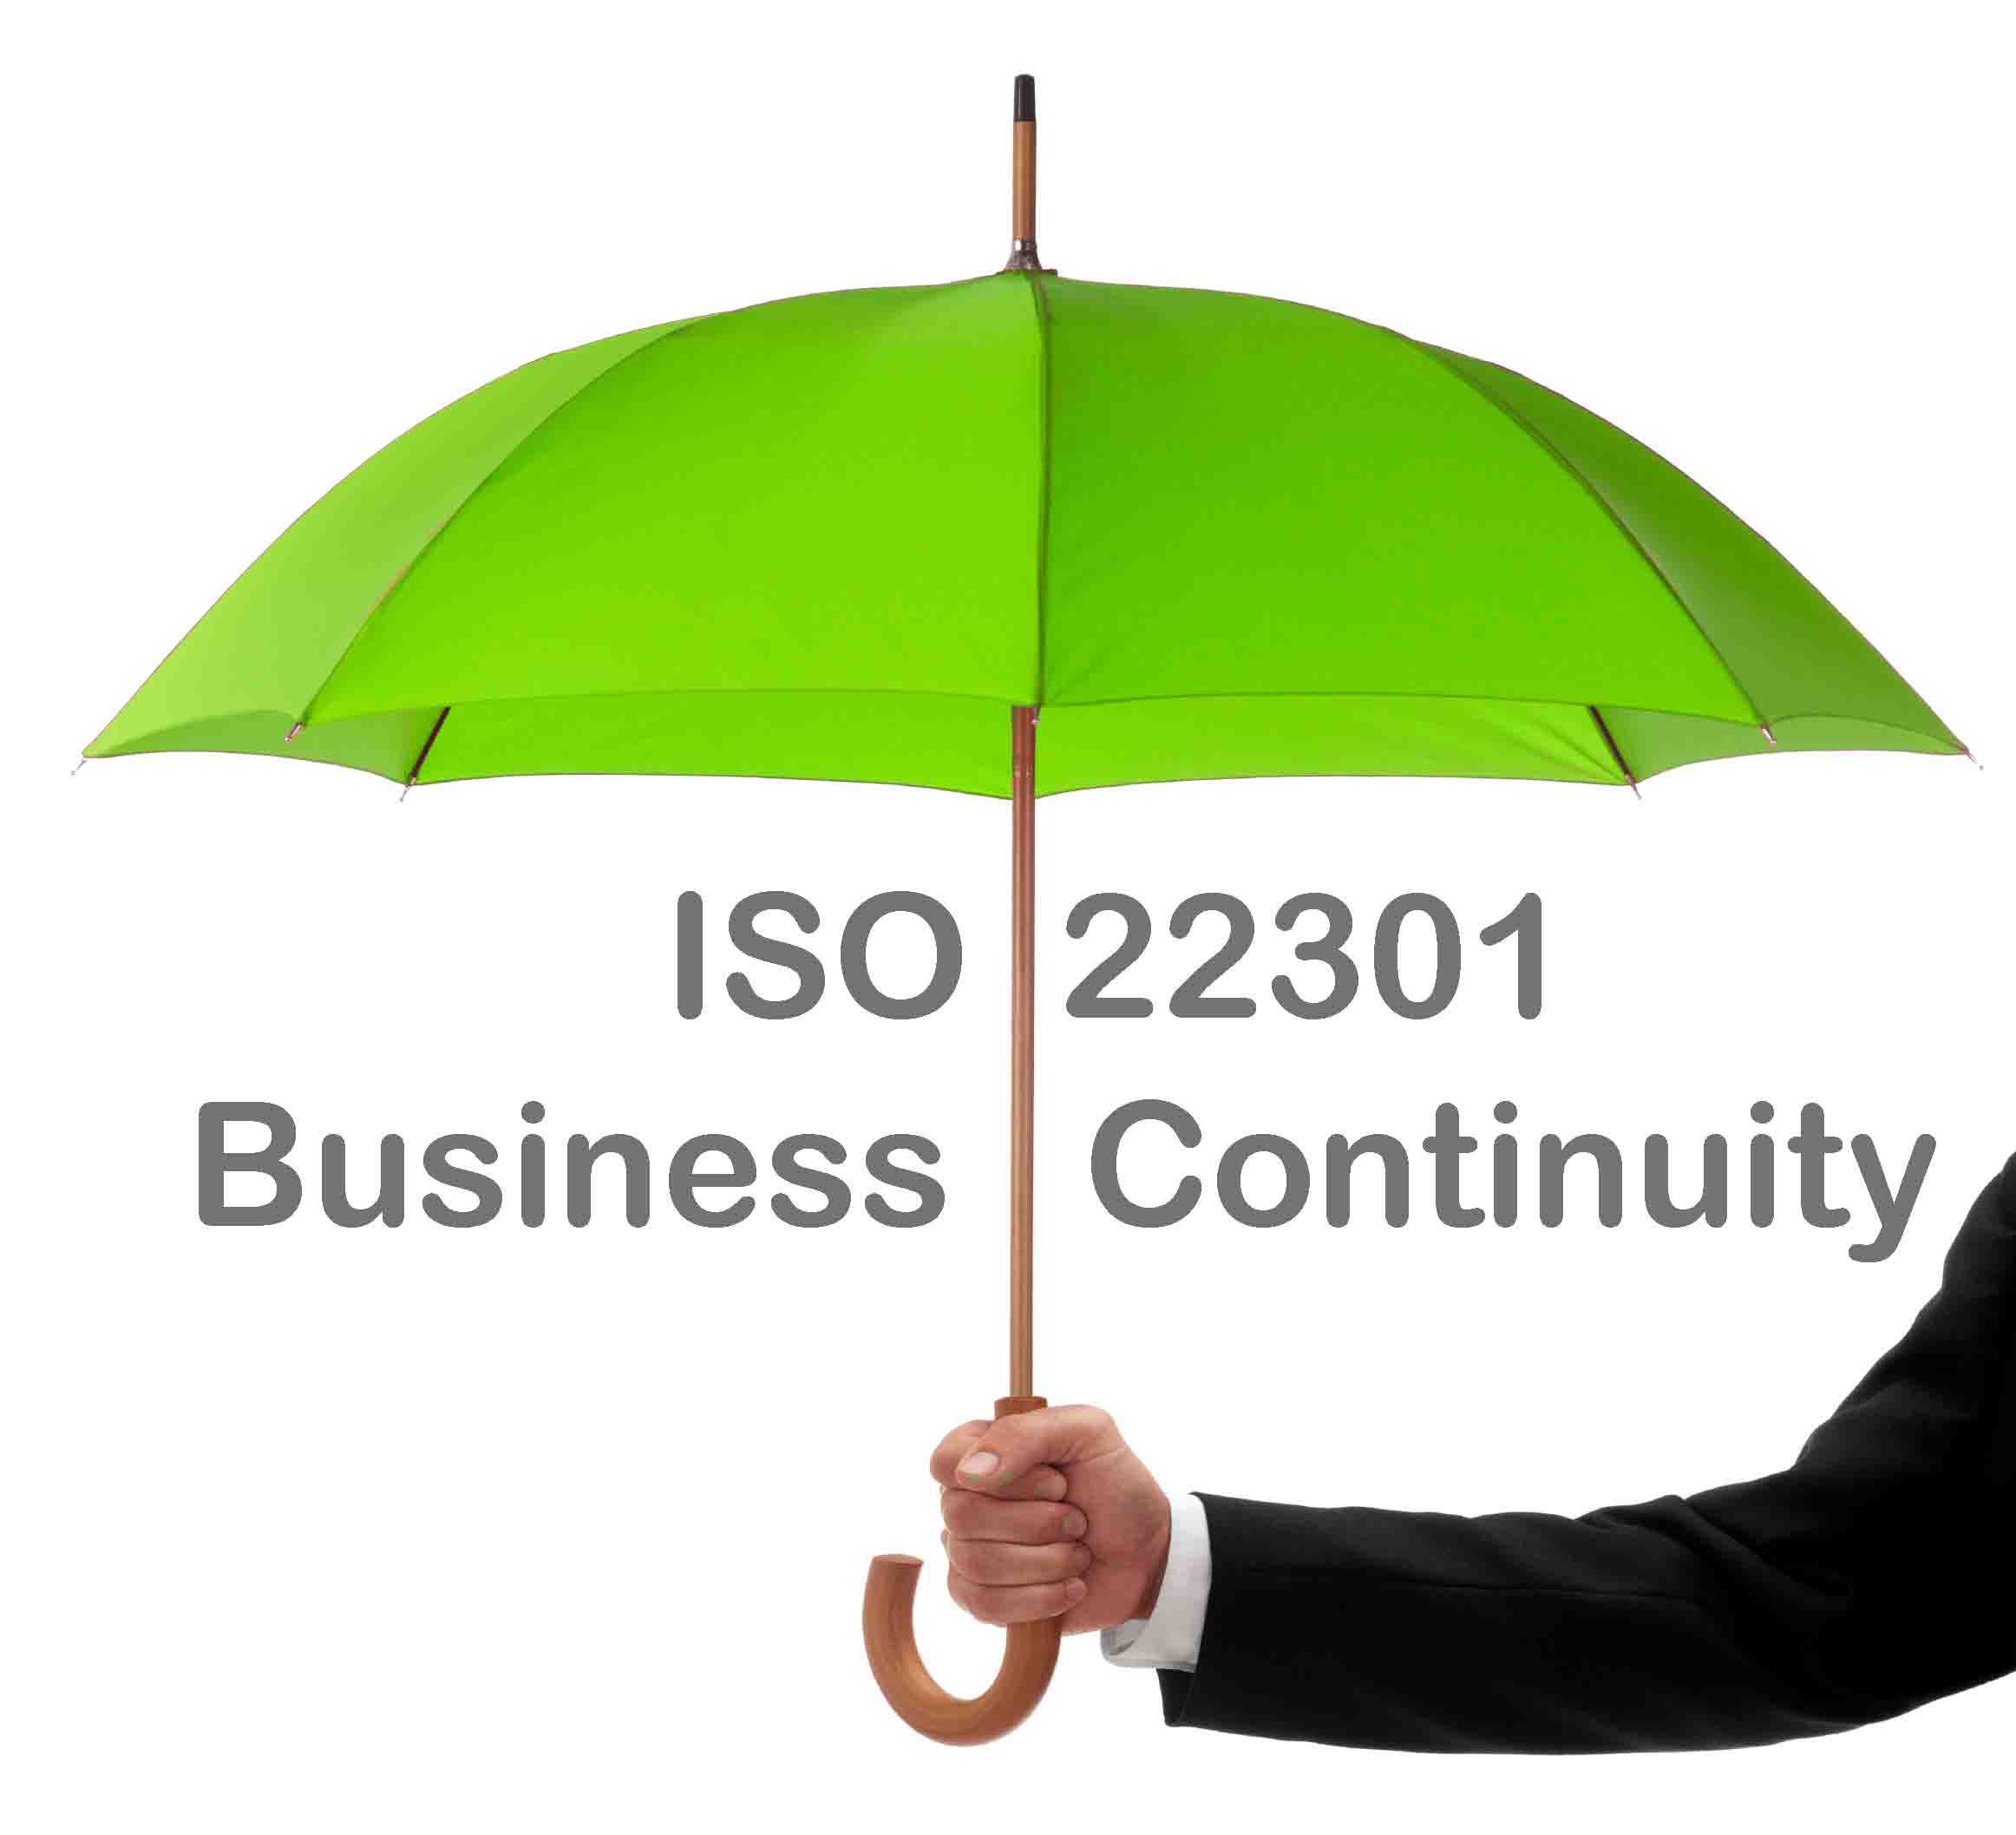 Business: A To Z Of Business Continuity